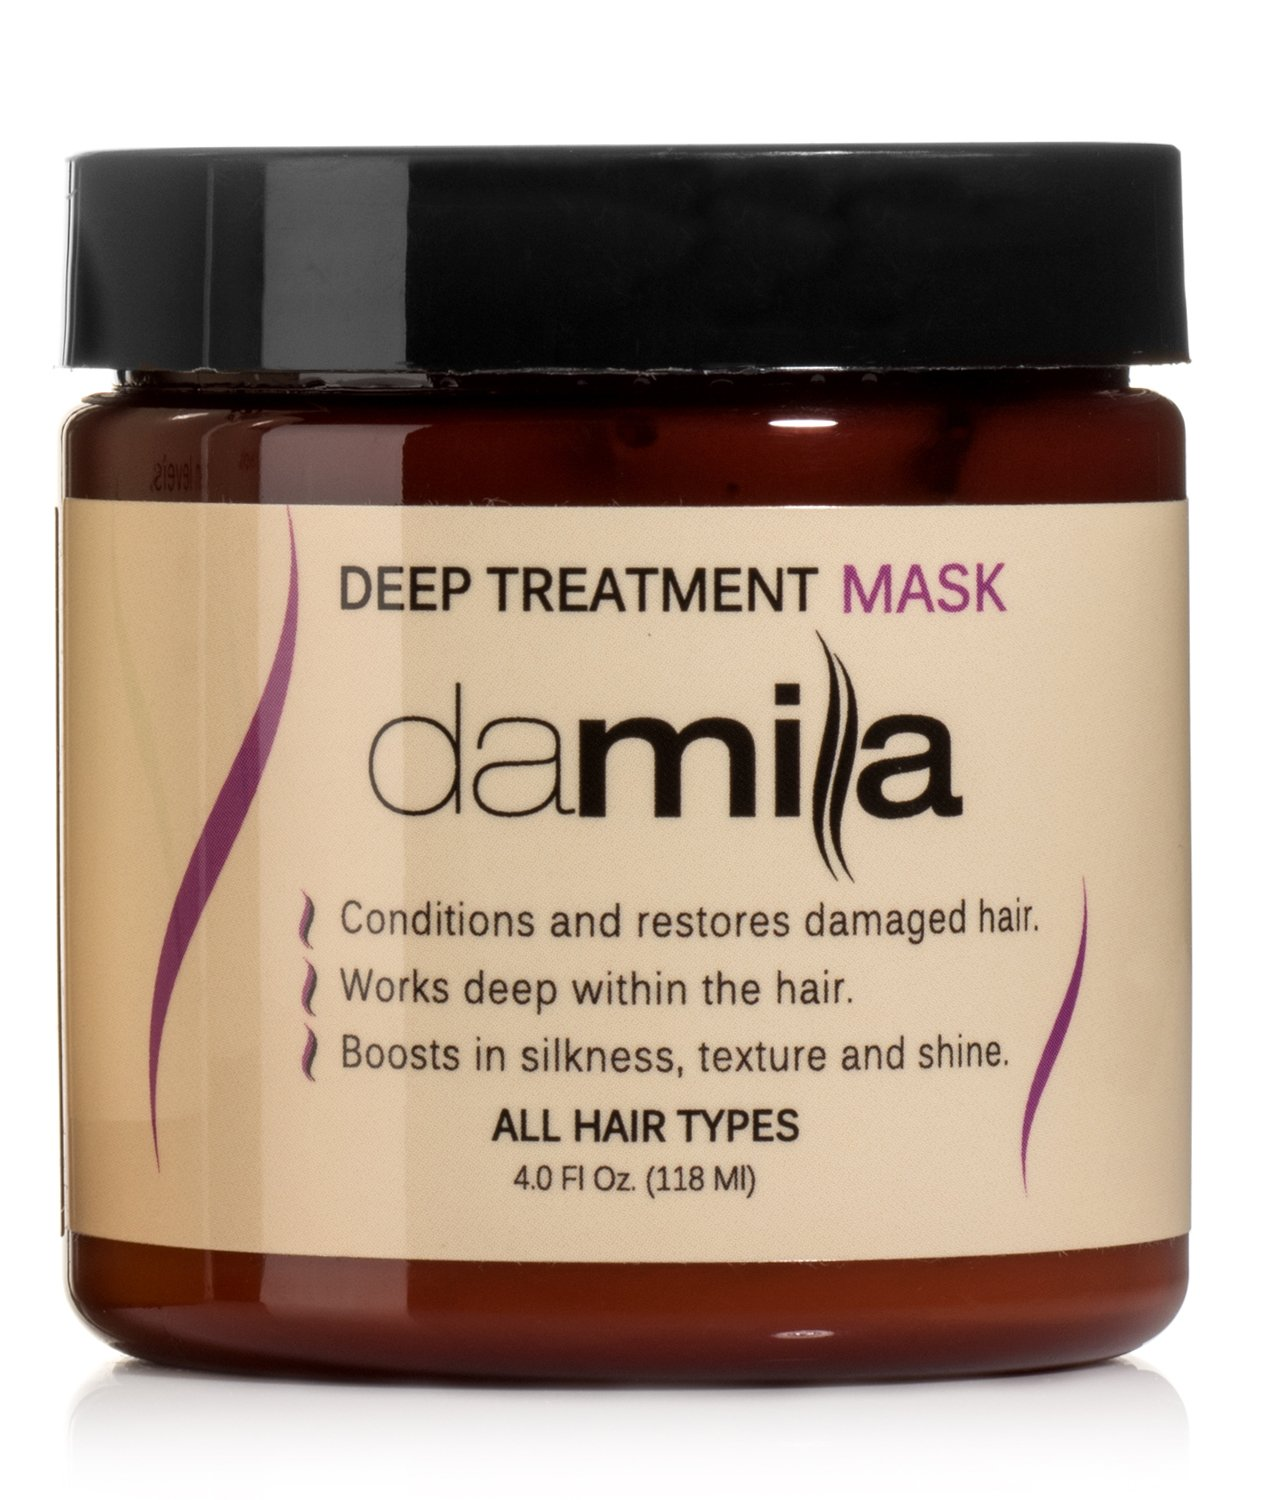 Deep Treatment Mask, Hair Rejuvenating Mask - Hydrolyzed Keratin to Strengthen and Moisturize - Conditions Damaged Hair Treatment by Damila (4 oz)